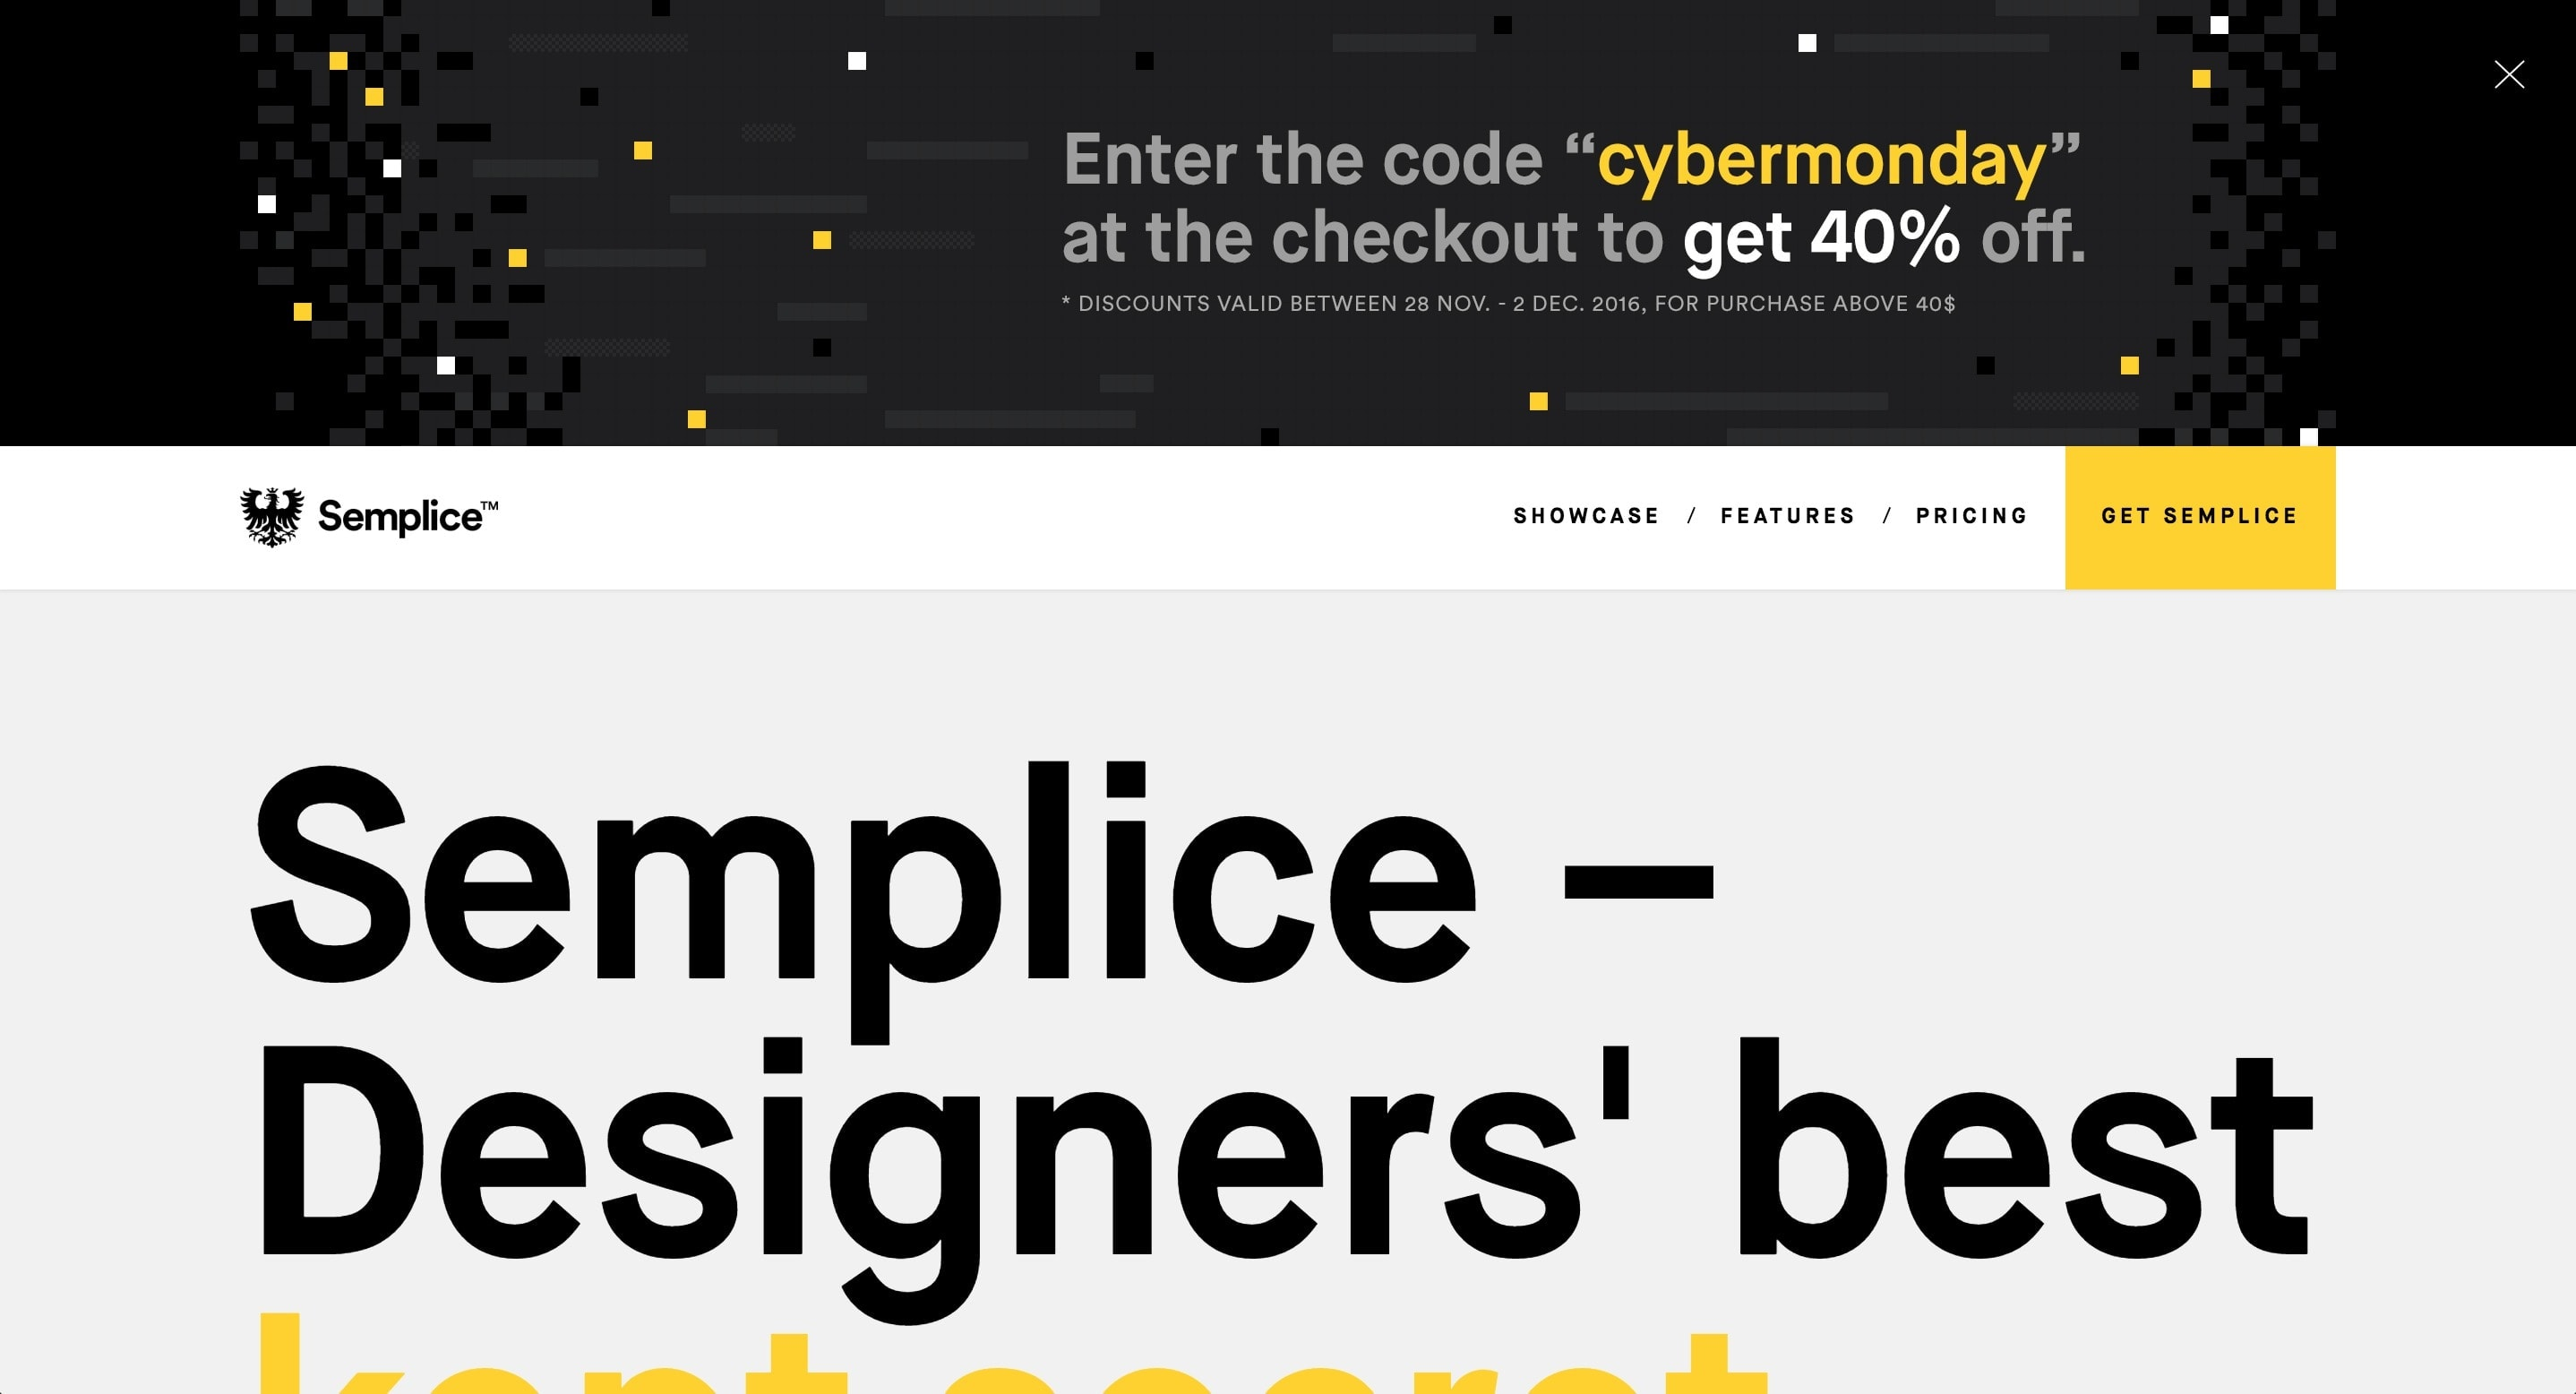 Advertising on Semplice